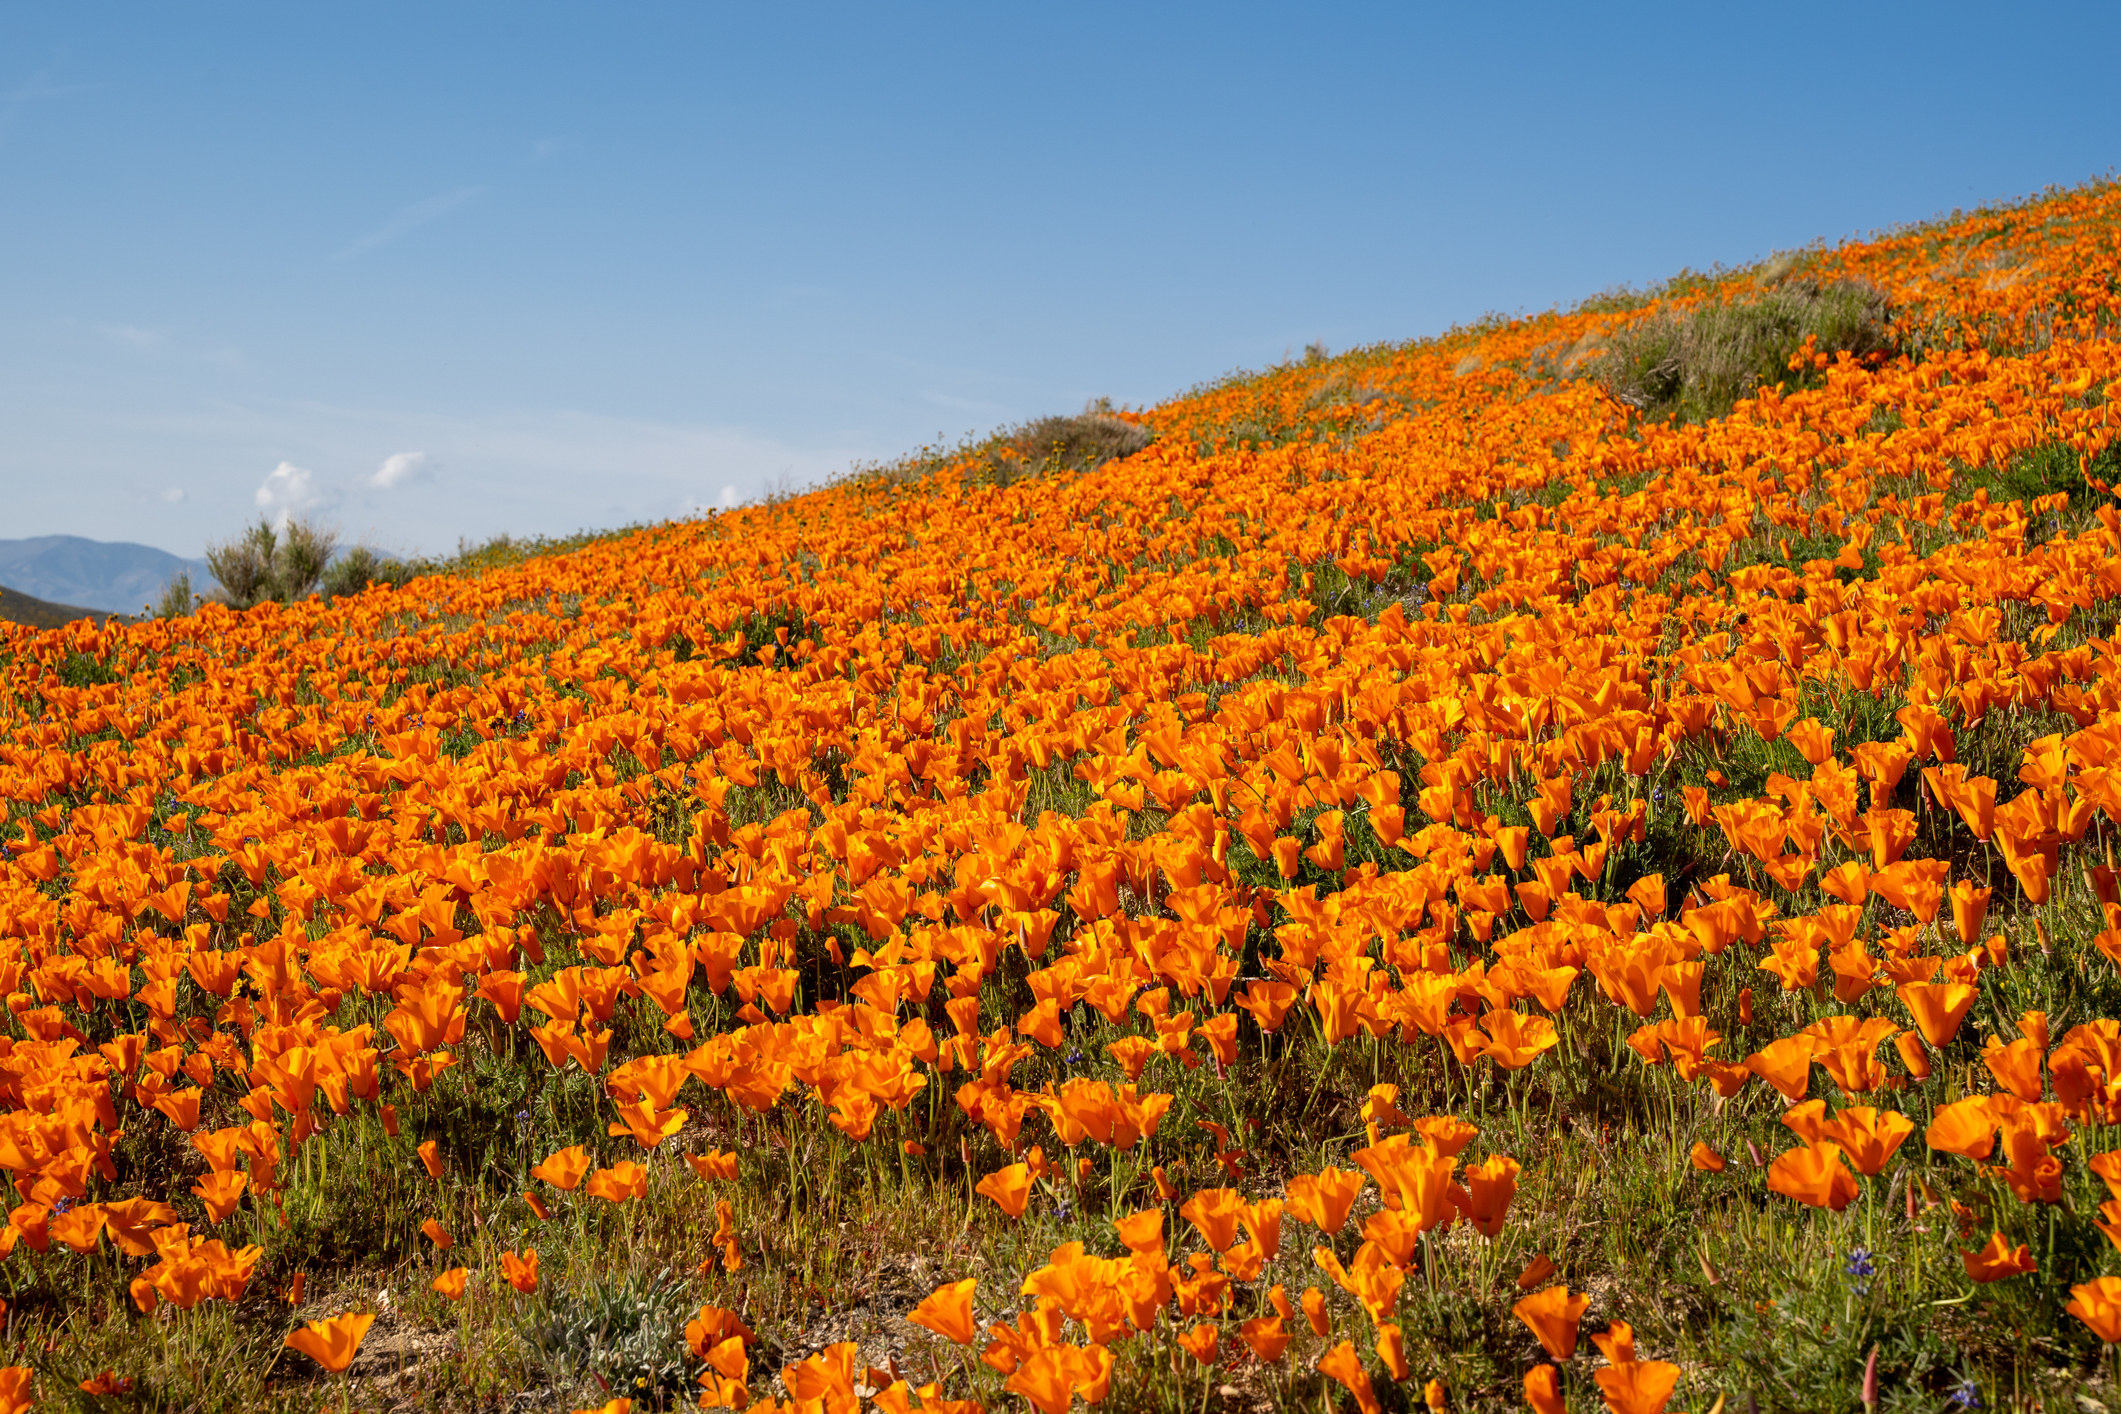 A vibrant field of poppies.